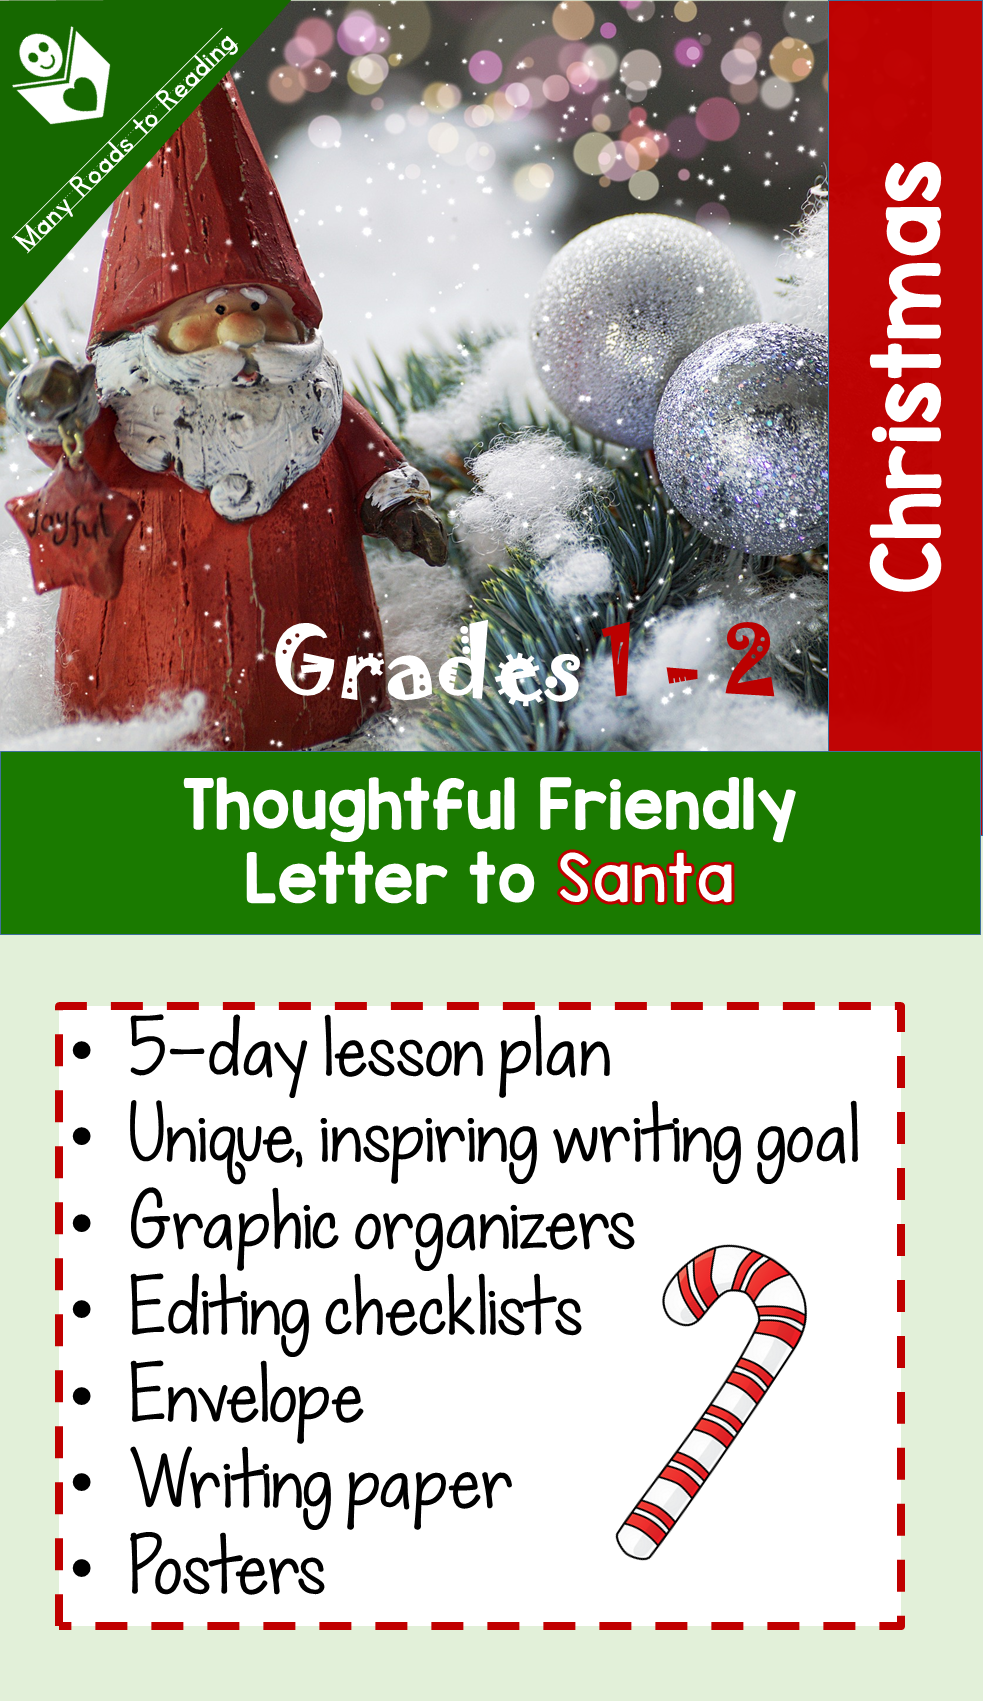 thoughtful friendly letter to santa graes 1 2 unique inspiring 5 day lesson plan for writing a friendly letter kids ask santa to send a gift to someone